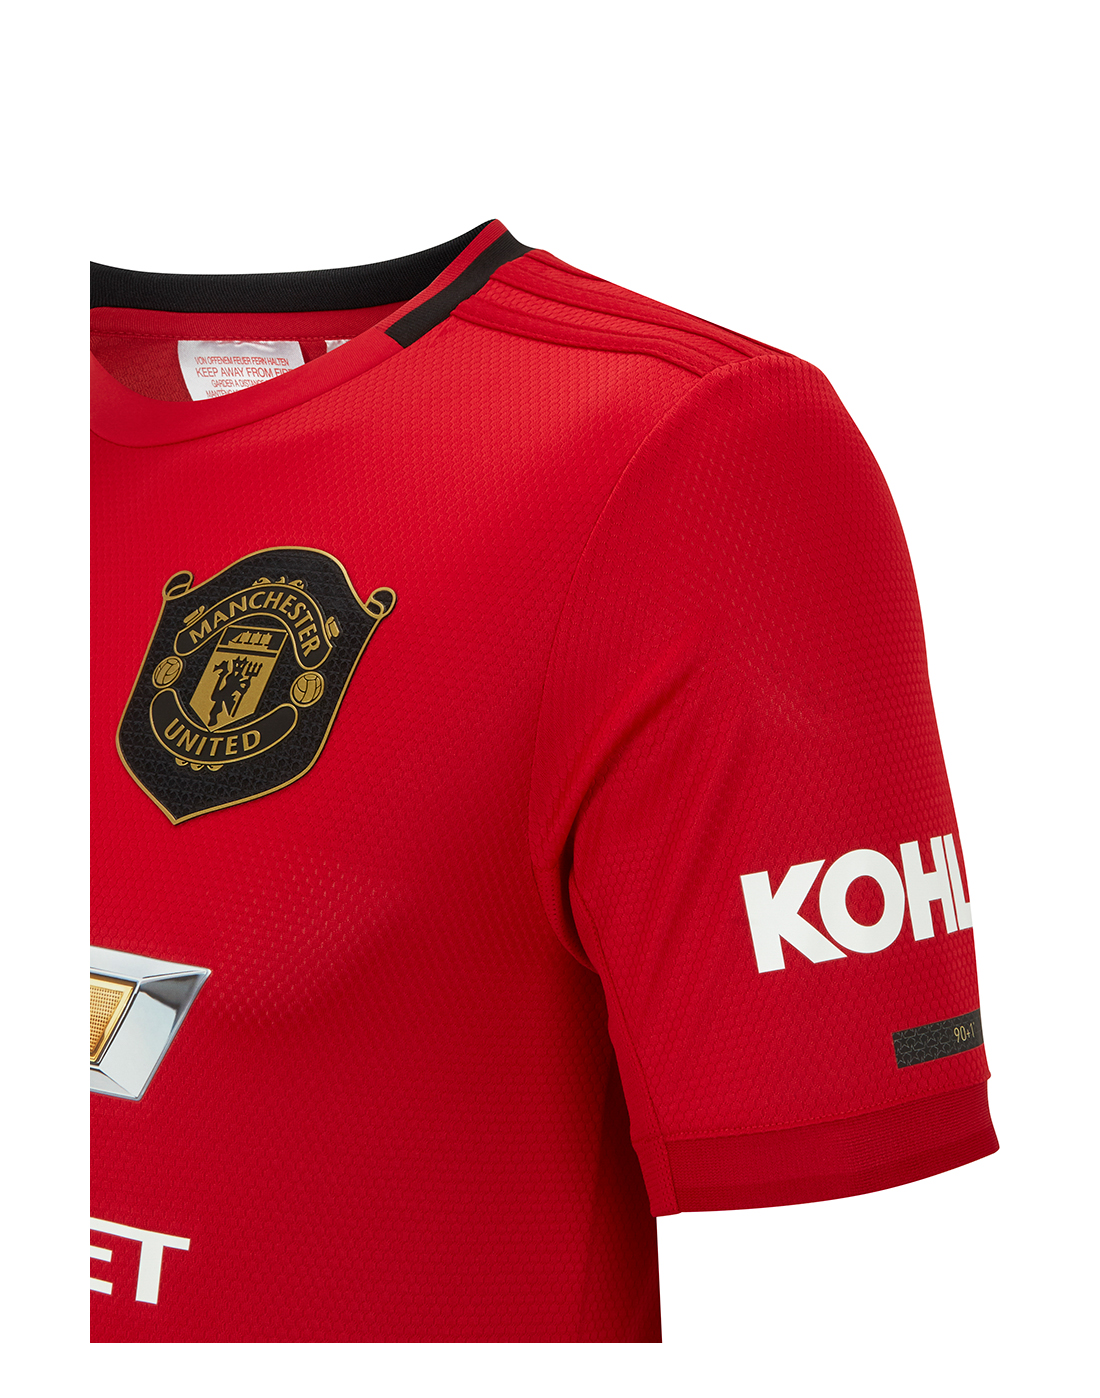 a39696125db Kid s Man United 19 20 Home Jersey